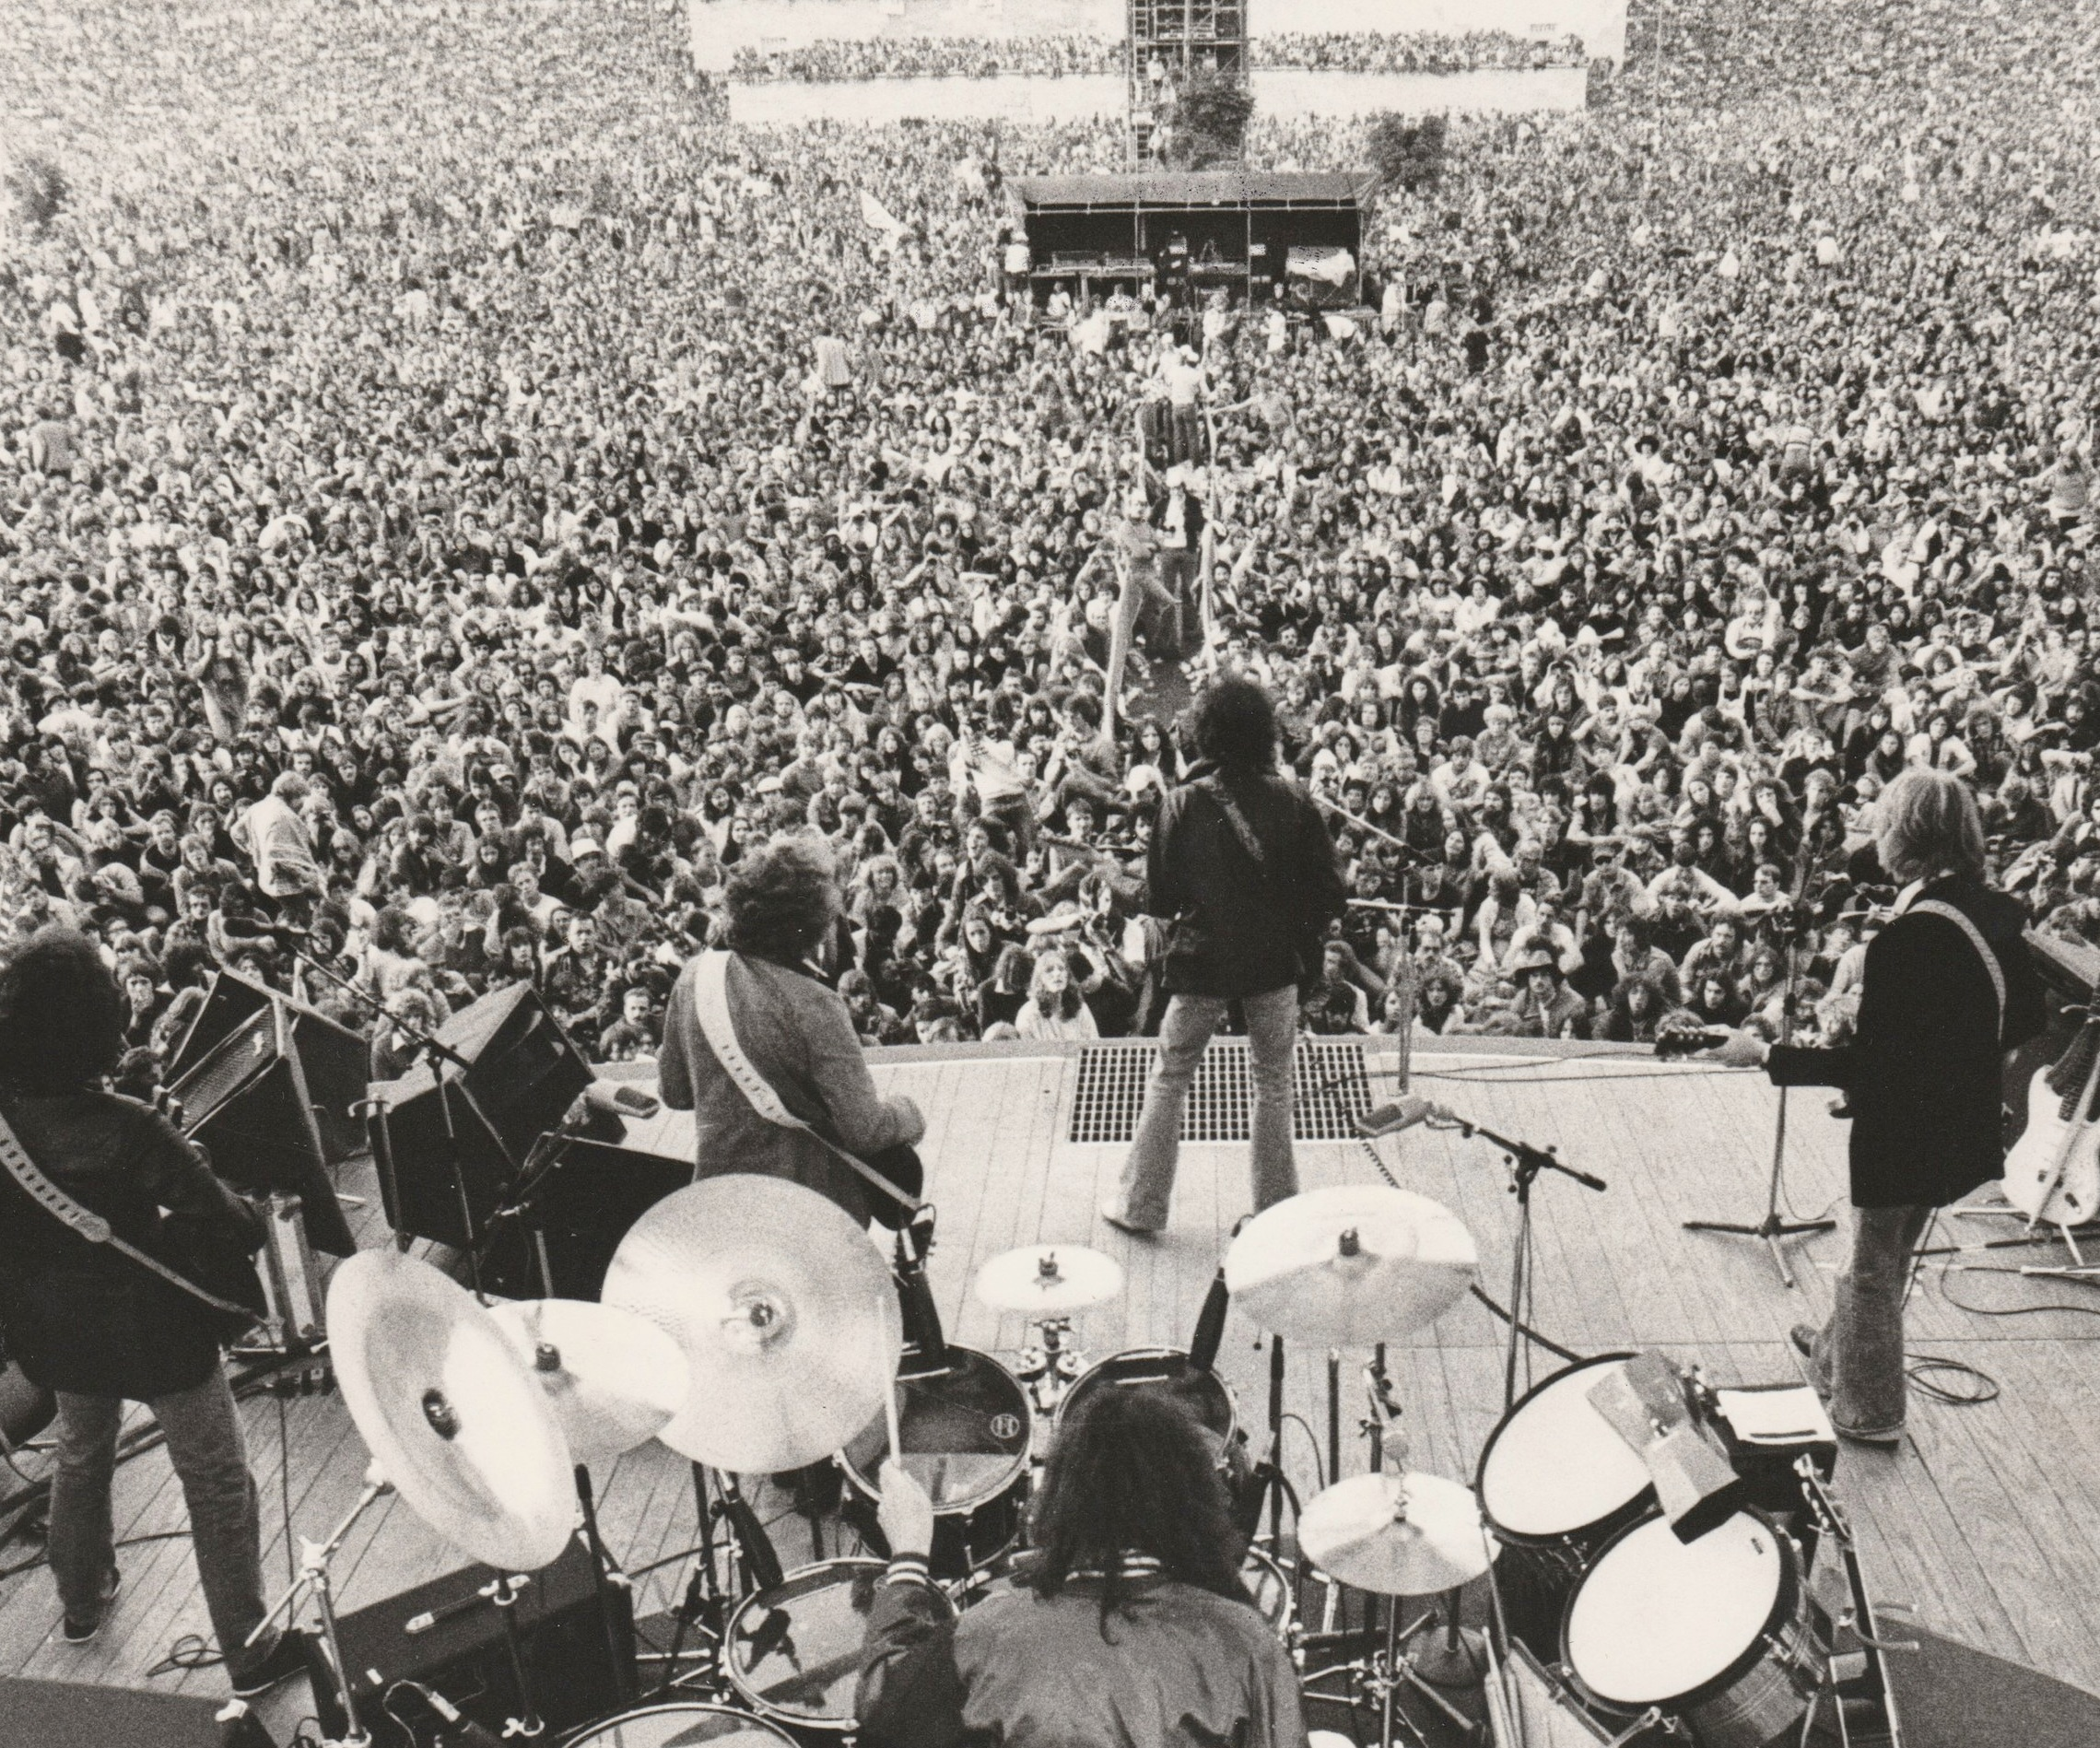 At Black Bush out side of London July 1978 in front of a crowd of 200,000 fans. (That's twice the population of Duluth, our hometown!) The next day Bobby and I flew back to NYC on the Concord then on to Minneapolis.